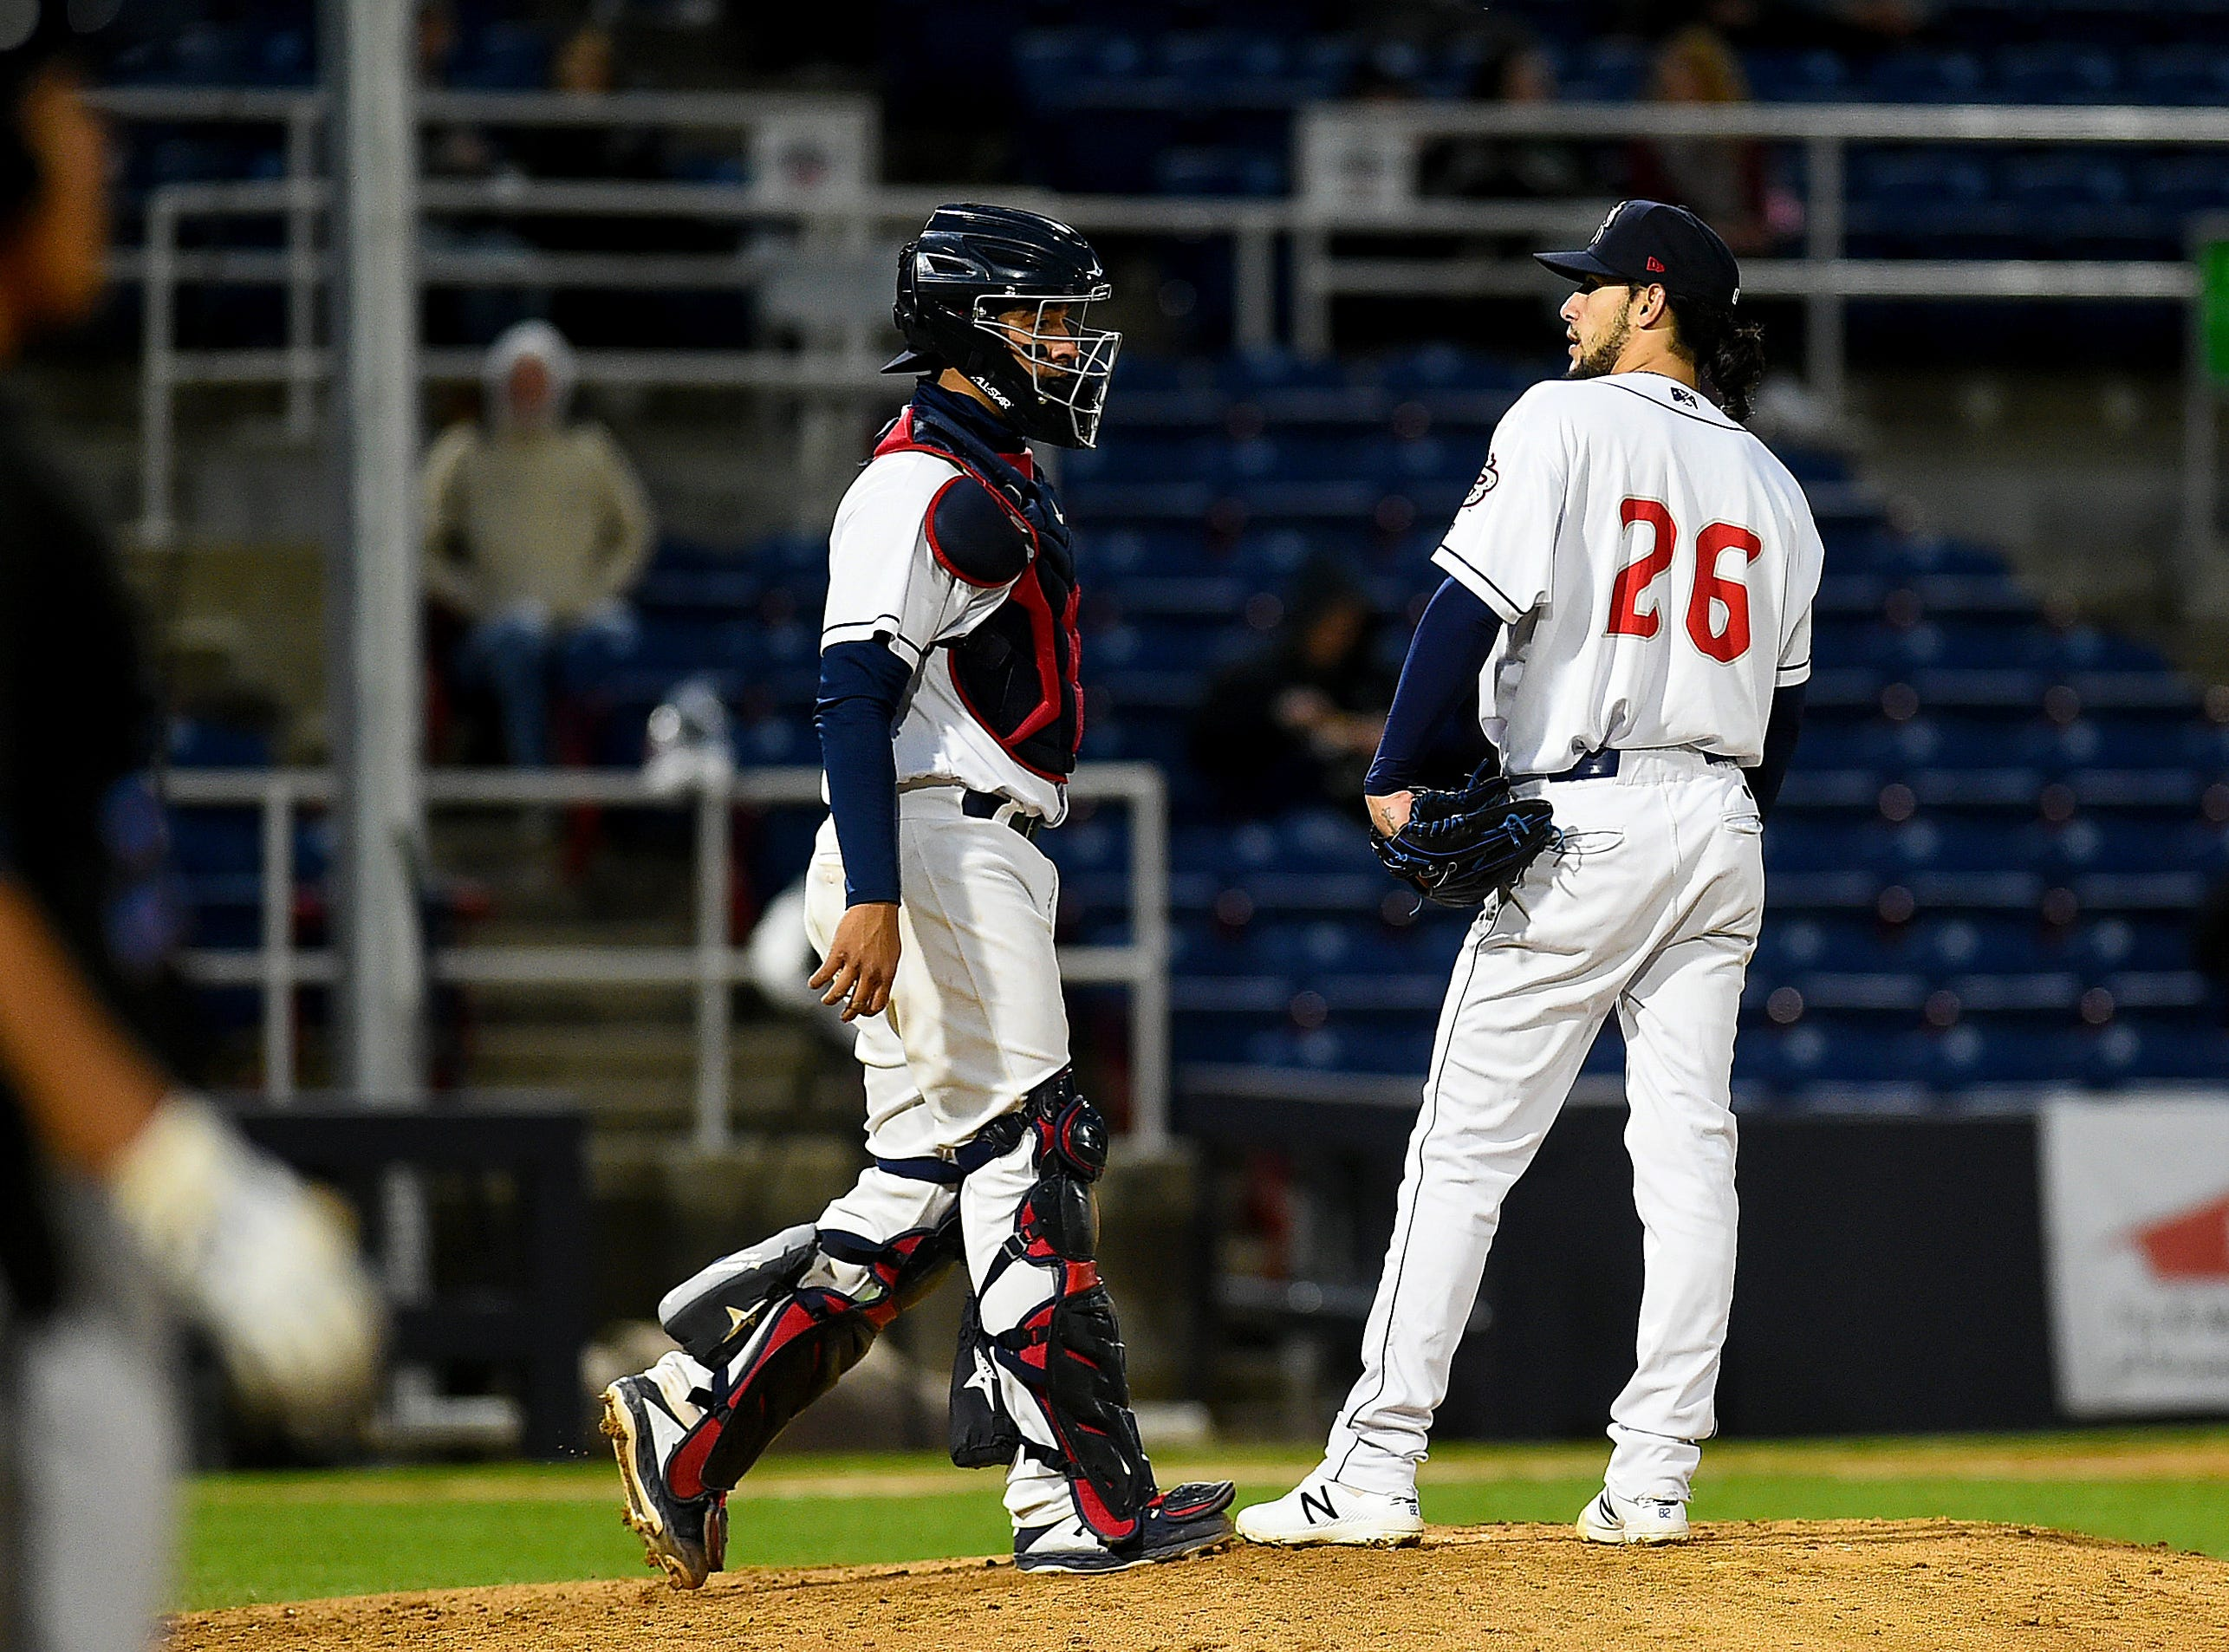 Binghamton Rumble Ponies hosted the Akron RubberDucks at NYSEG Stadium, April 29, 2019. Akron won with a final score of 9-5.